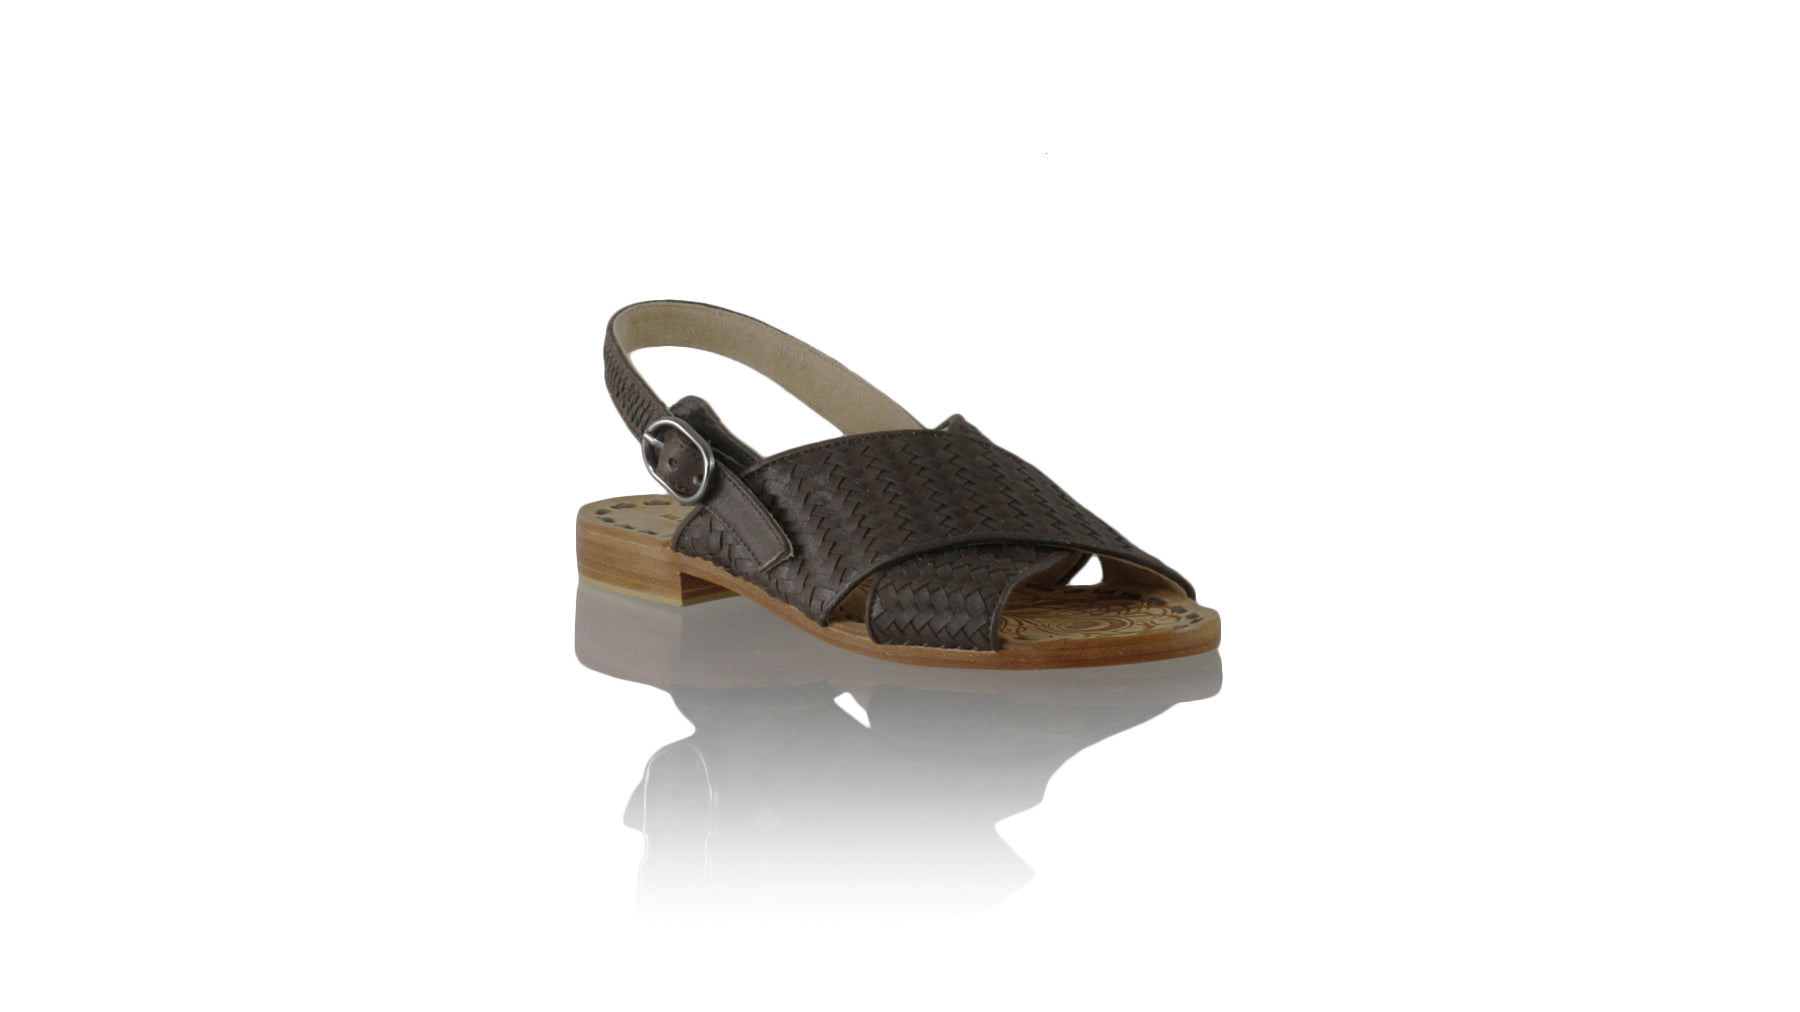 Leather-shoes-Oki 20mm Flat - Dark Brown-sandals flat-NILUH DJELANTIK-NILUH DJELANTIK